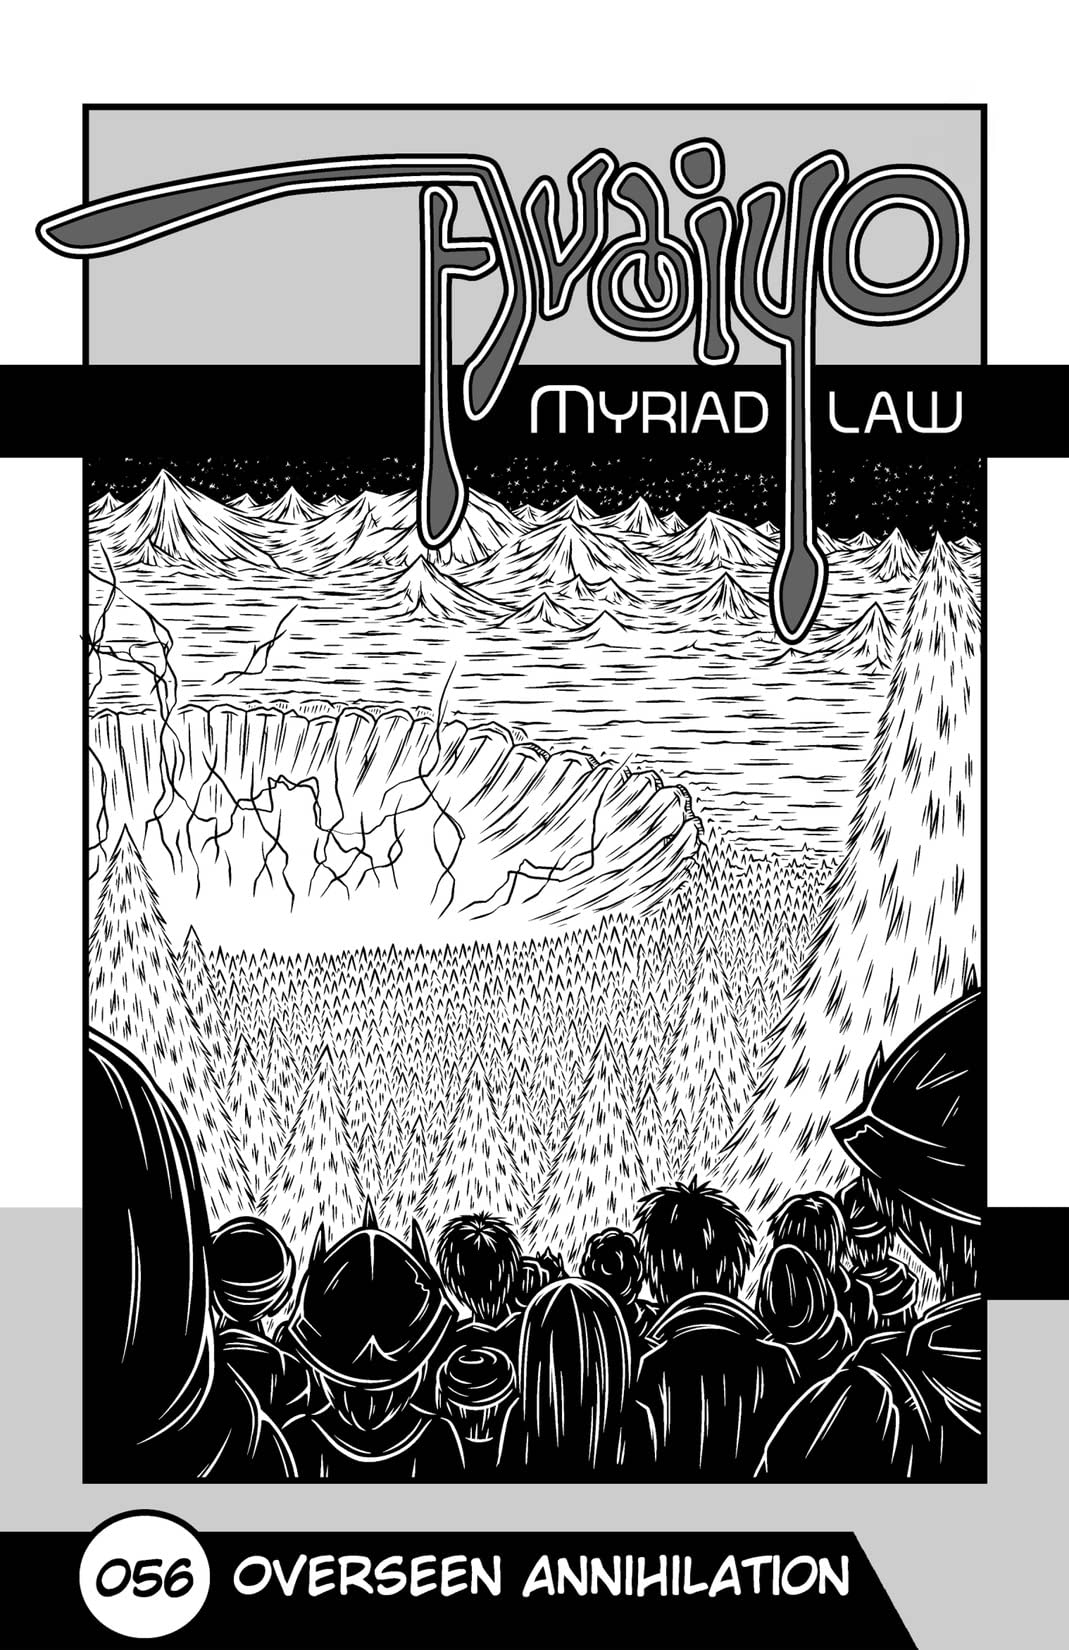 Avaiyo: Myriad Law #056